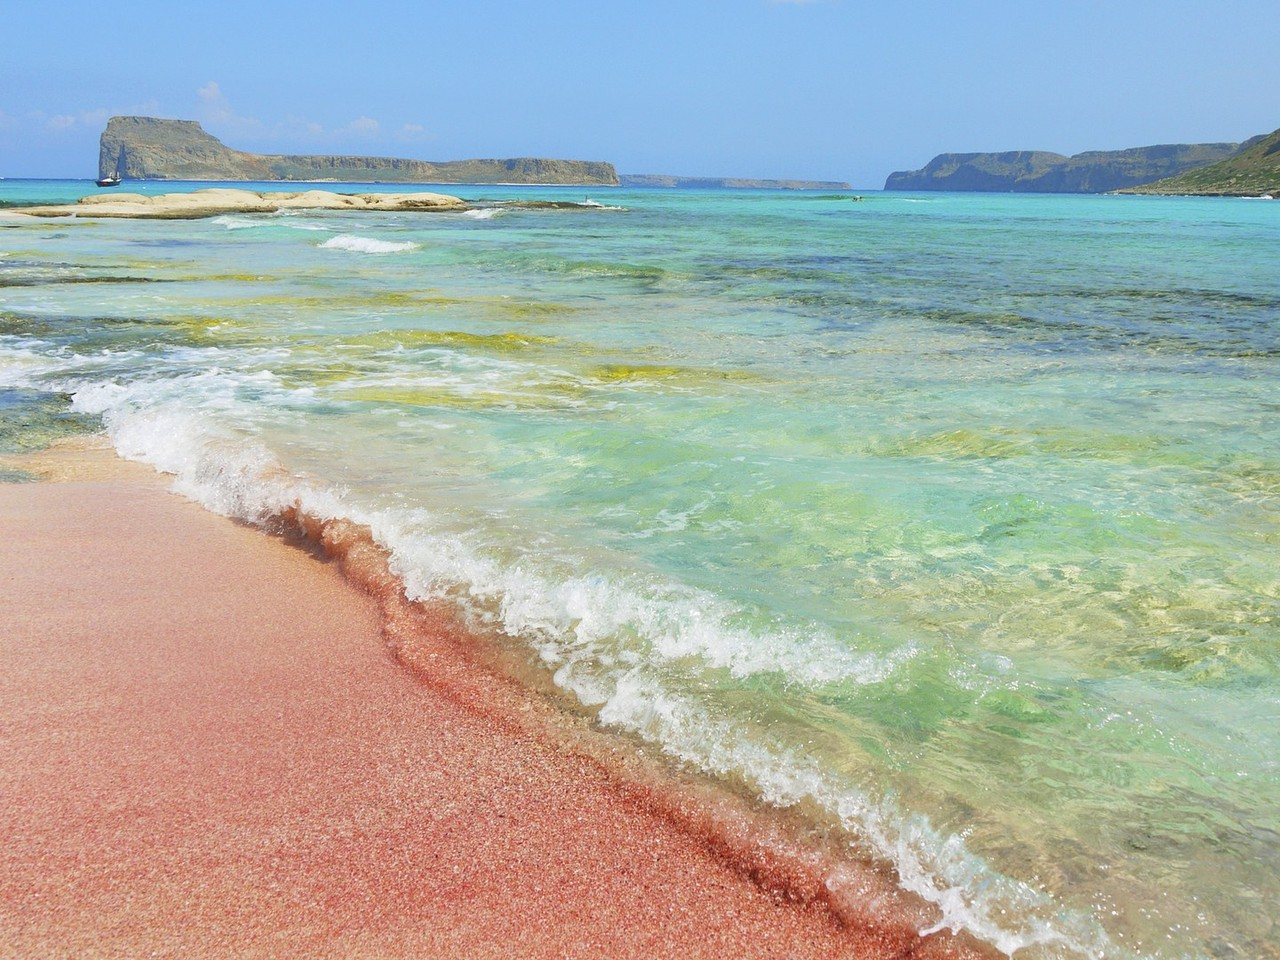 pink-beaches-balos-bay-cr-getty-508445897.jpg